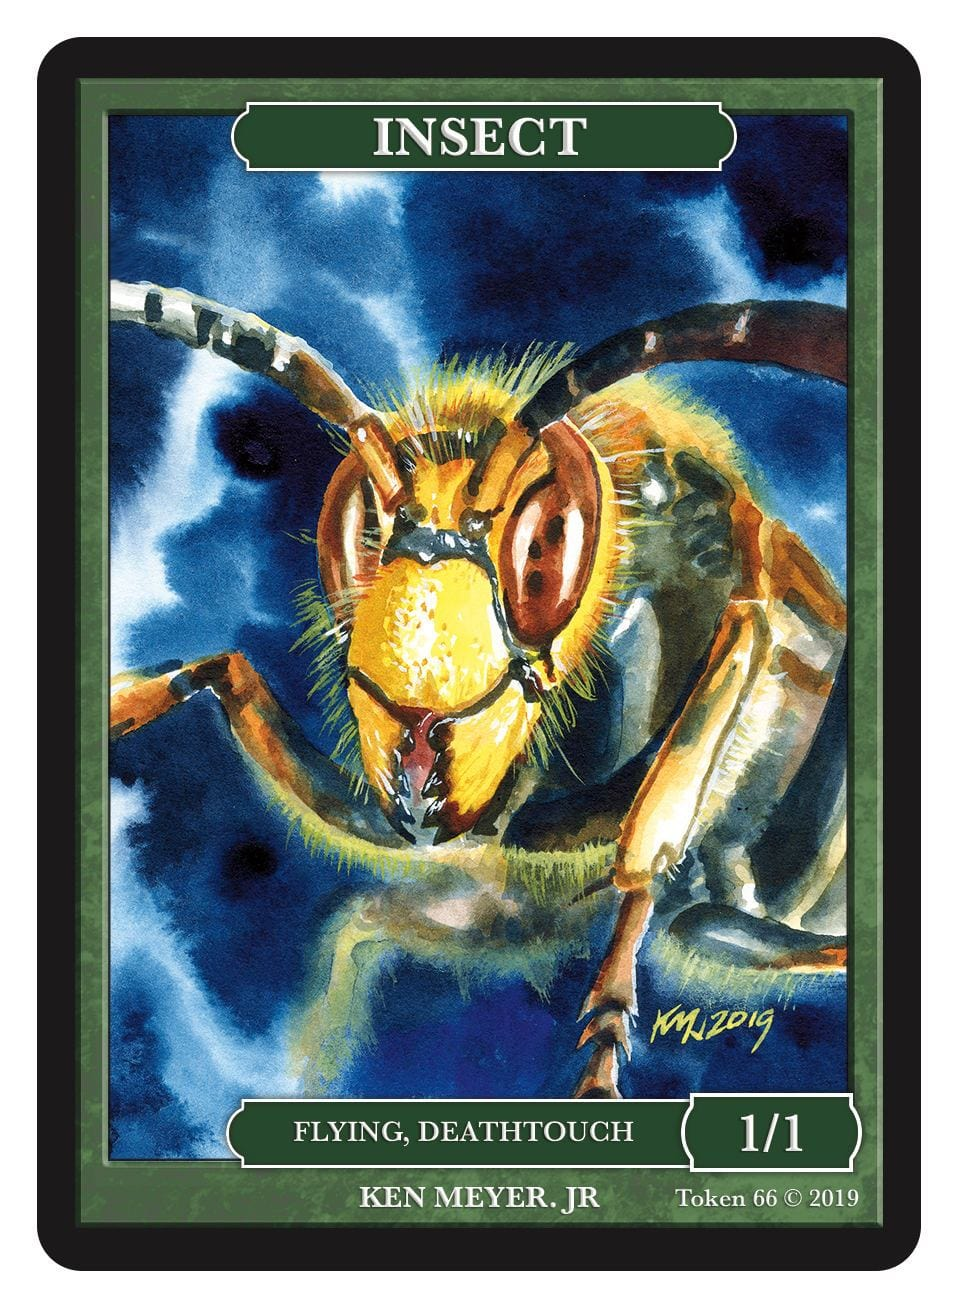 Insect Token (1/1 - Flying, Deathtouch) by Ken Meyer Jr. - Token - Original Magic Art - Accessories for Magic the Gathering and other card games